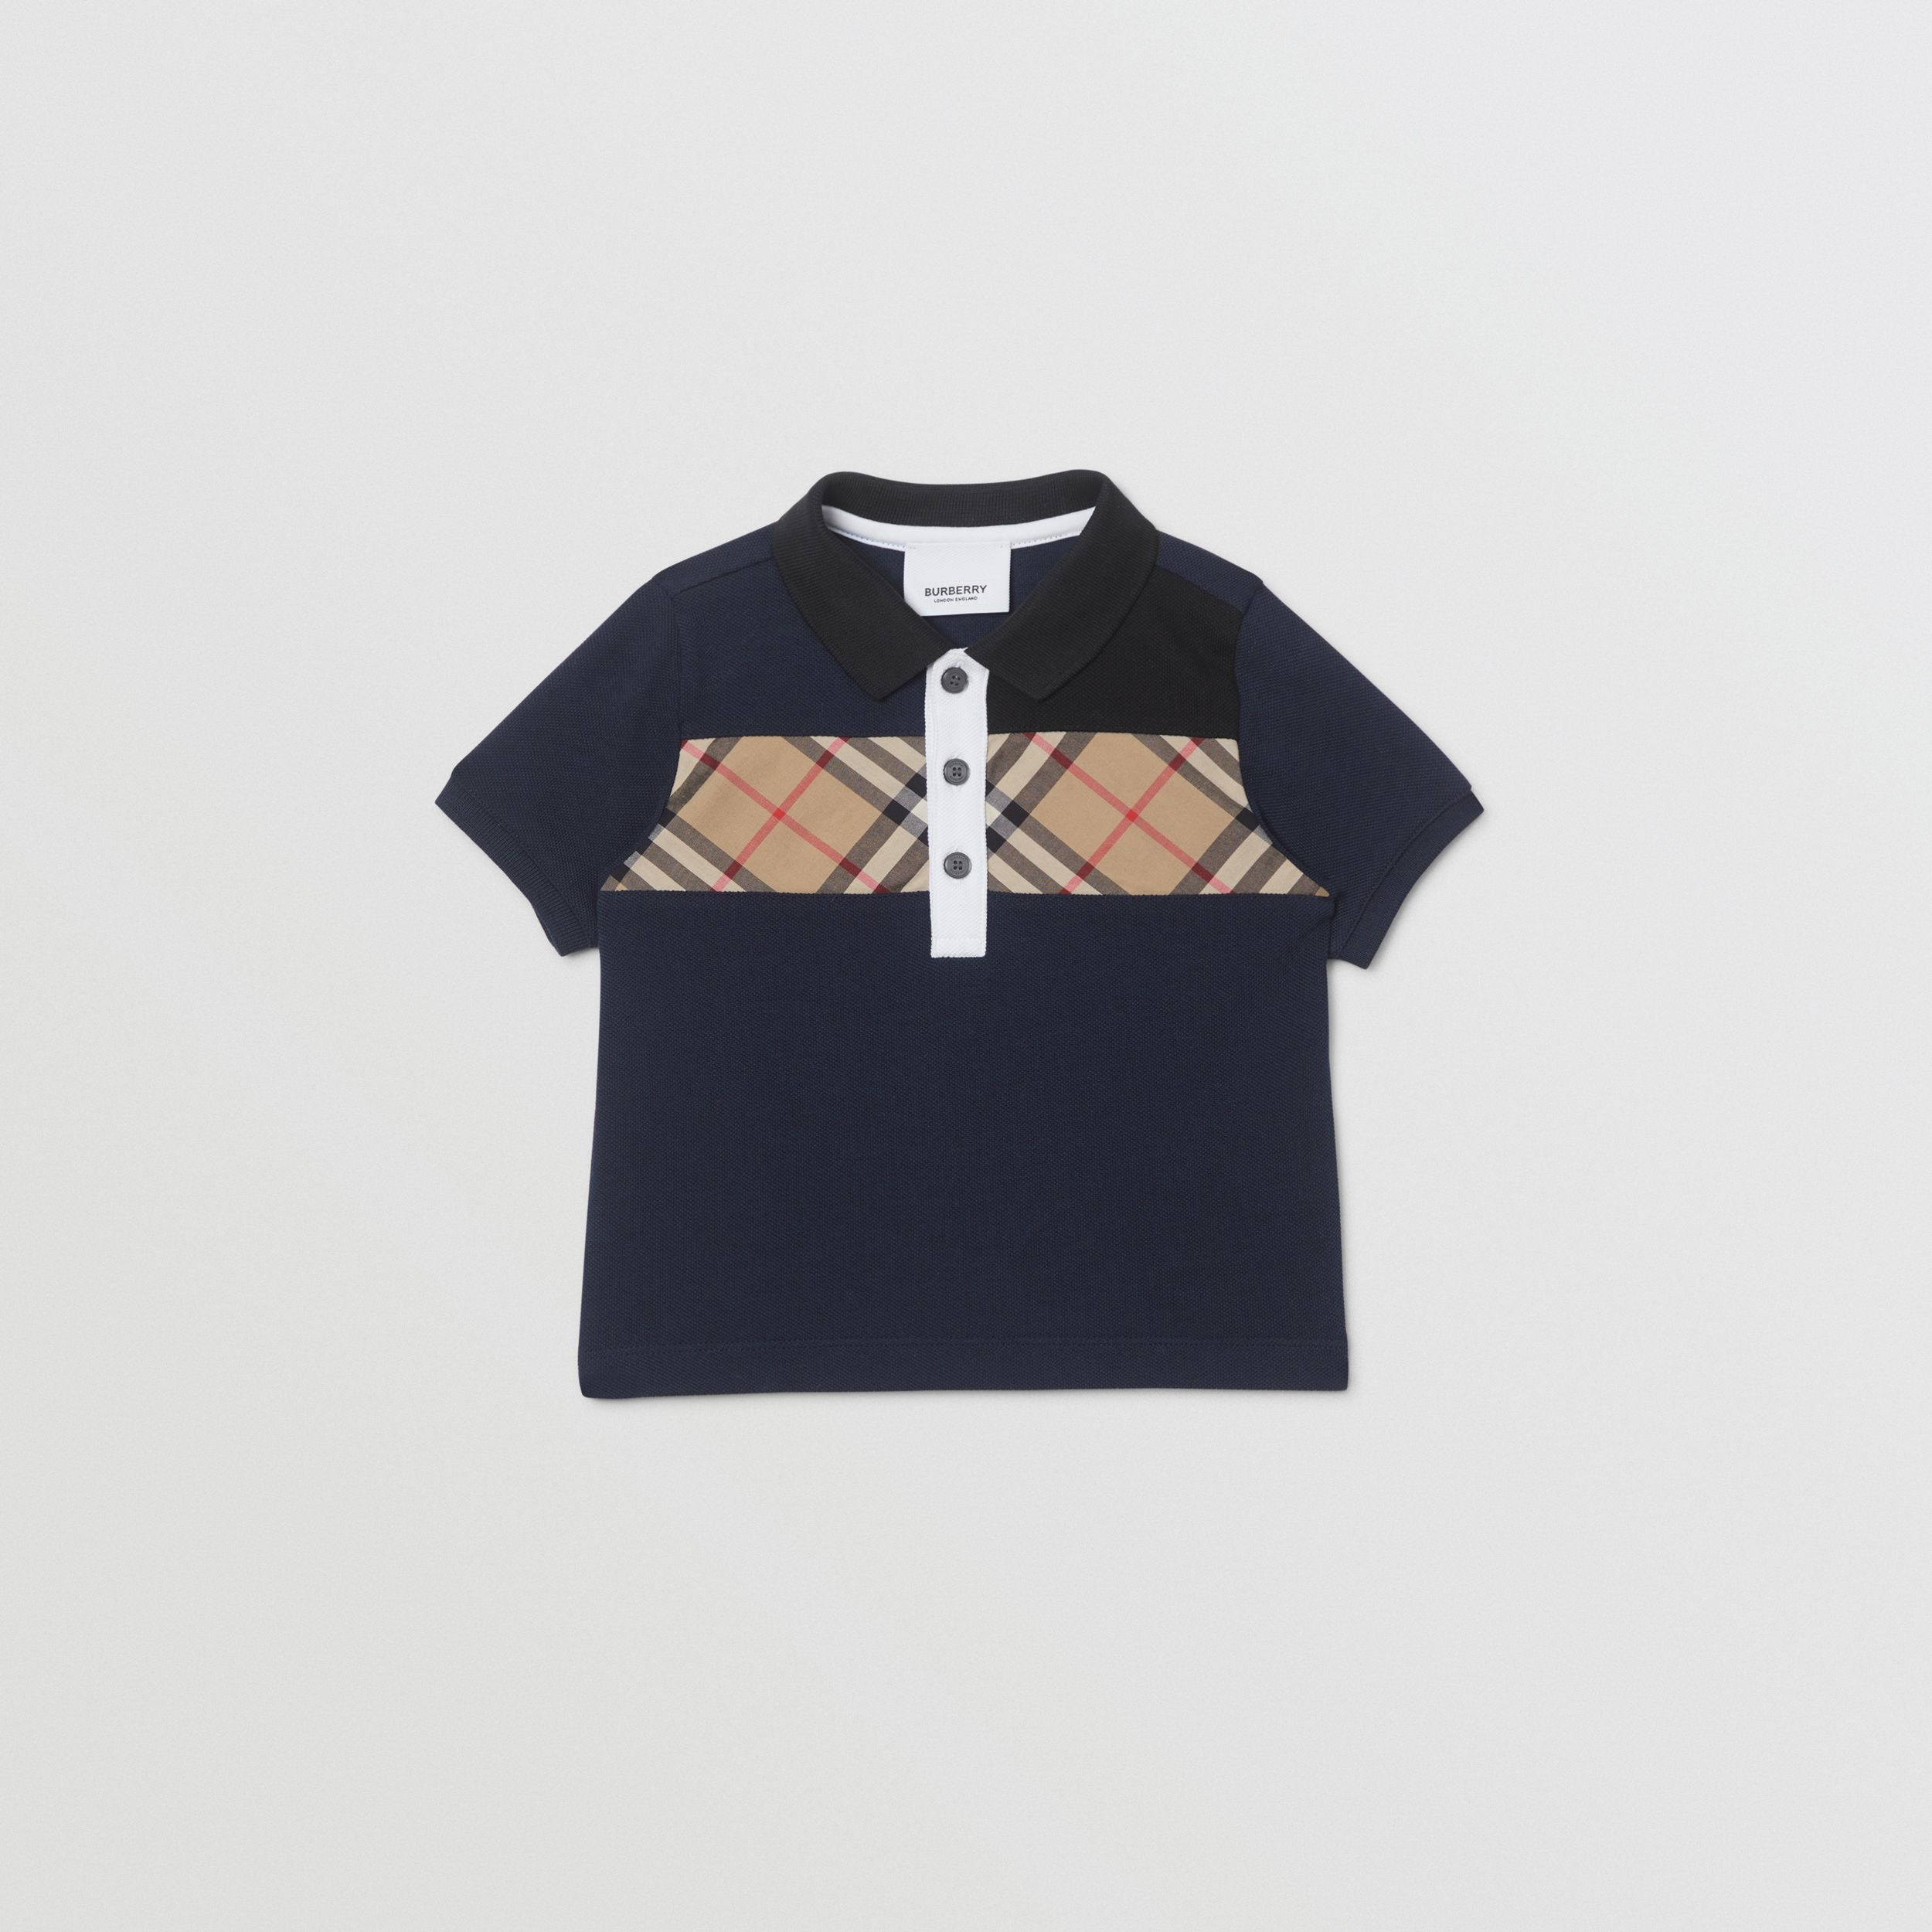 Vintage Check Panel Cotton Polo Shirt in Navy - Children | Burberry - 1